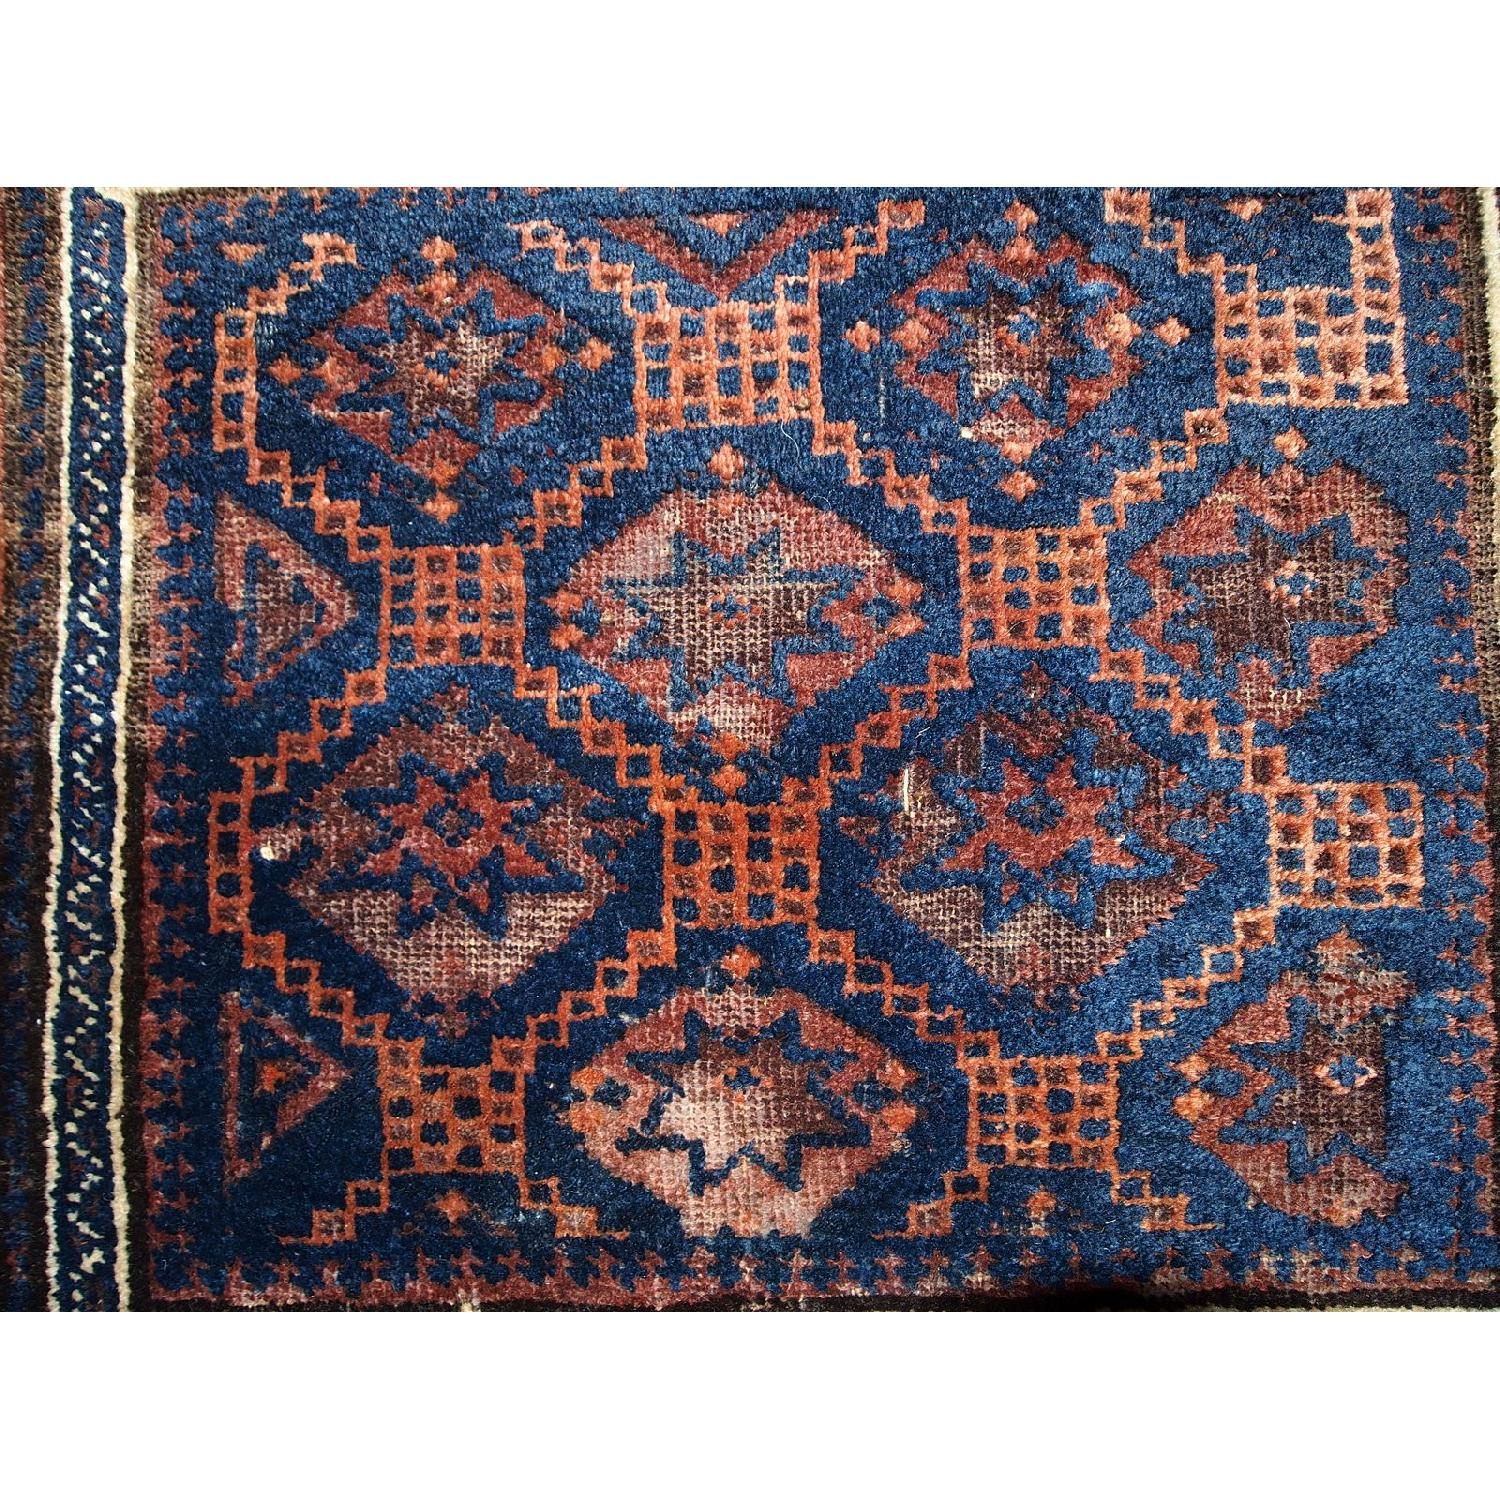 Antique Handmade Collectible Afghan Baluch Bag Face Rug - image-2